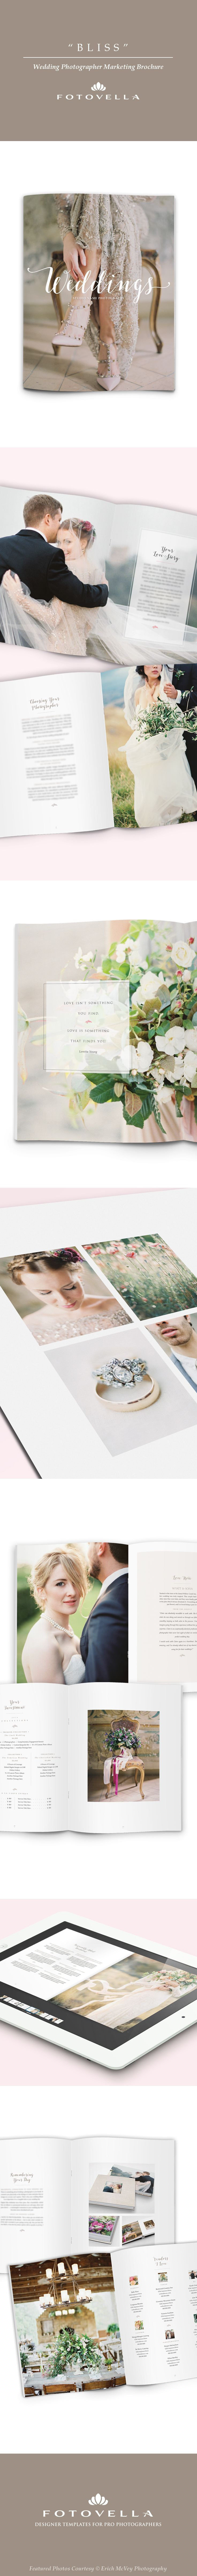 Wedding photographer marketing brochure / welcome guide template by FOTOVELLA • Photos by Erich McVey Photography